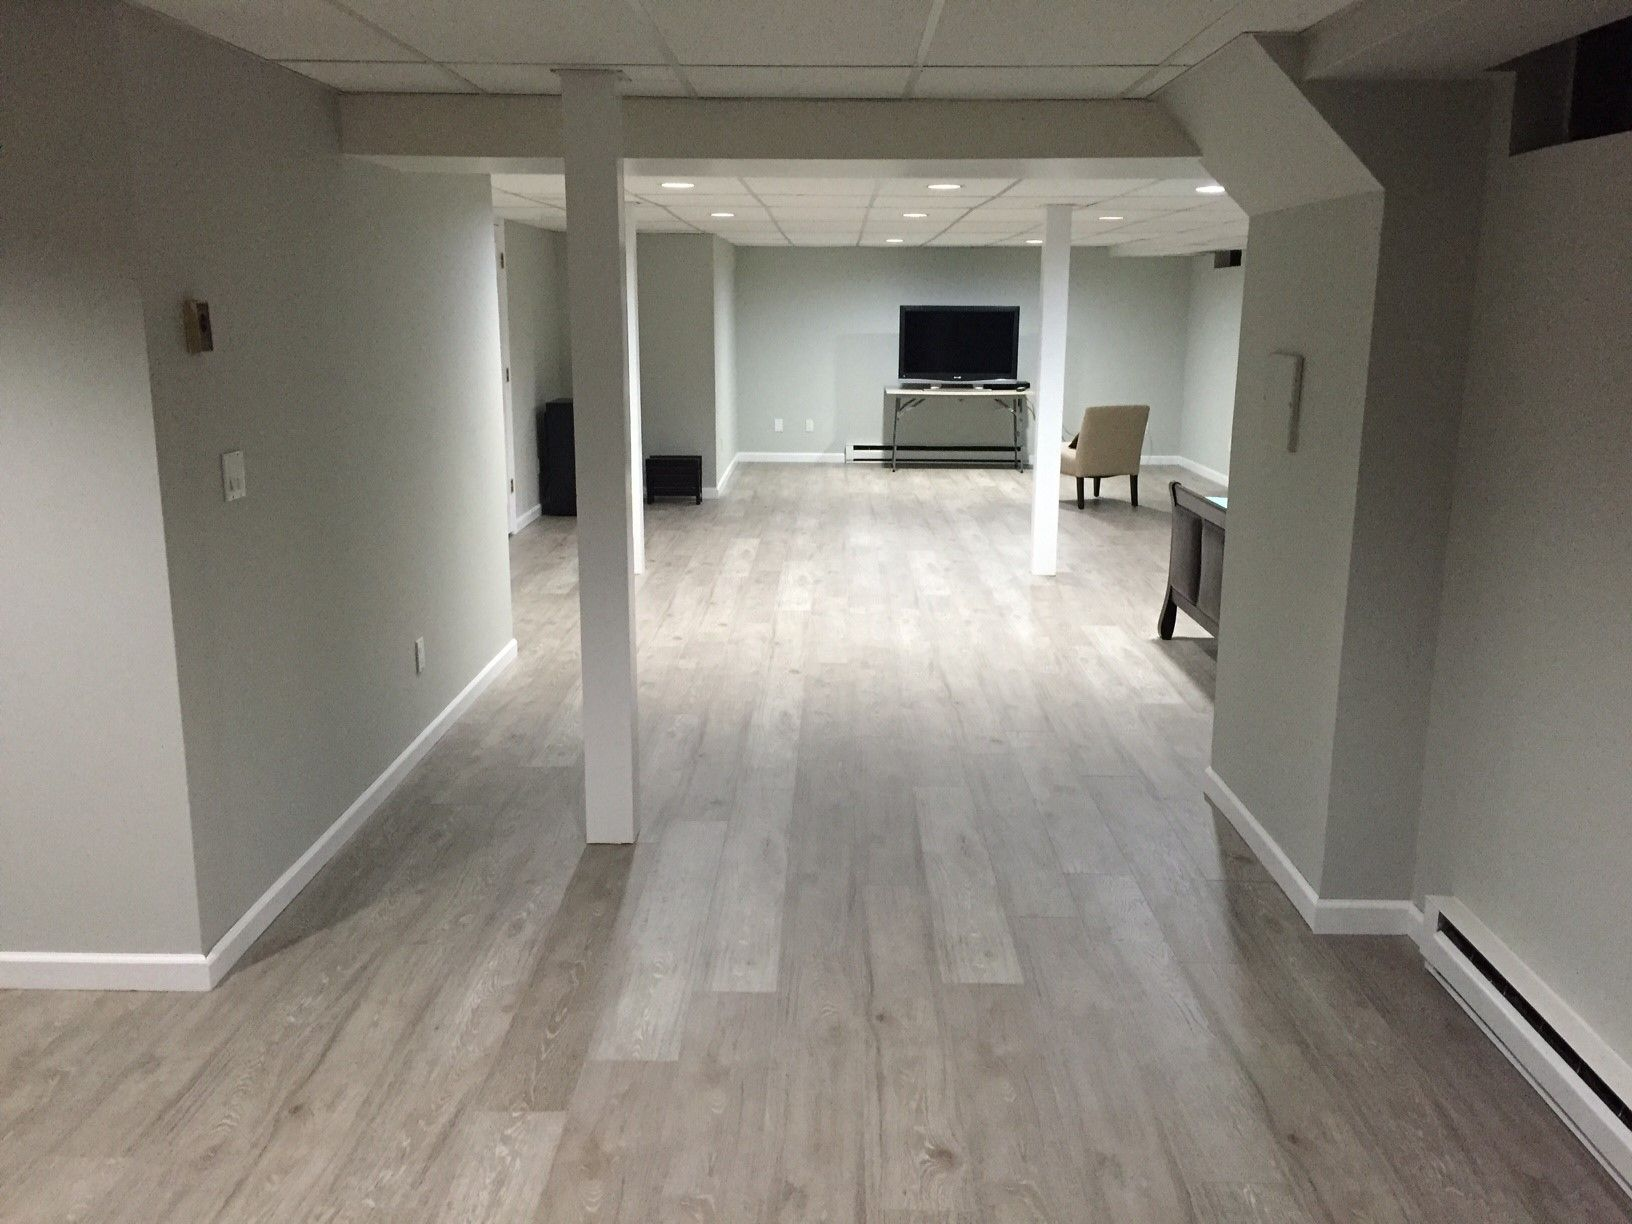 Jose G Upgraded His Basement With Kronoswiss Ecru Laminate